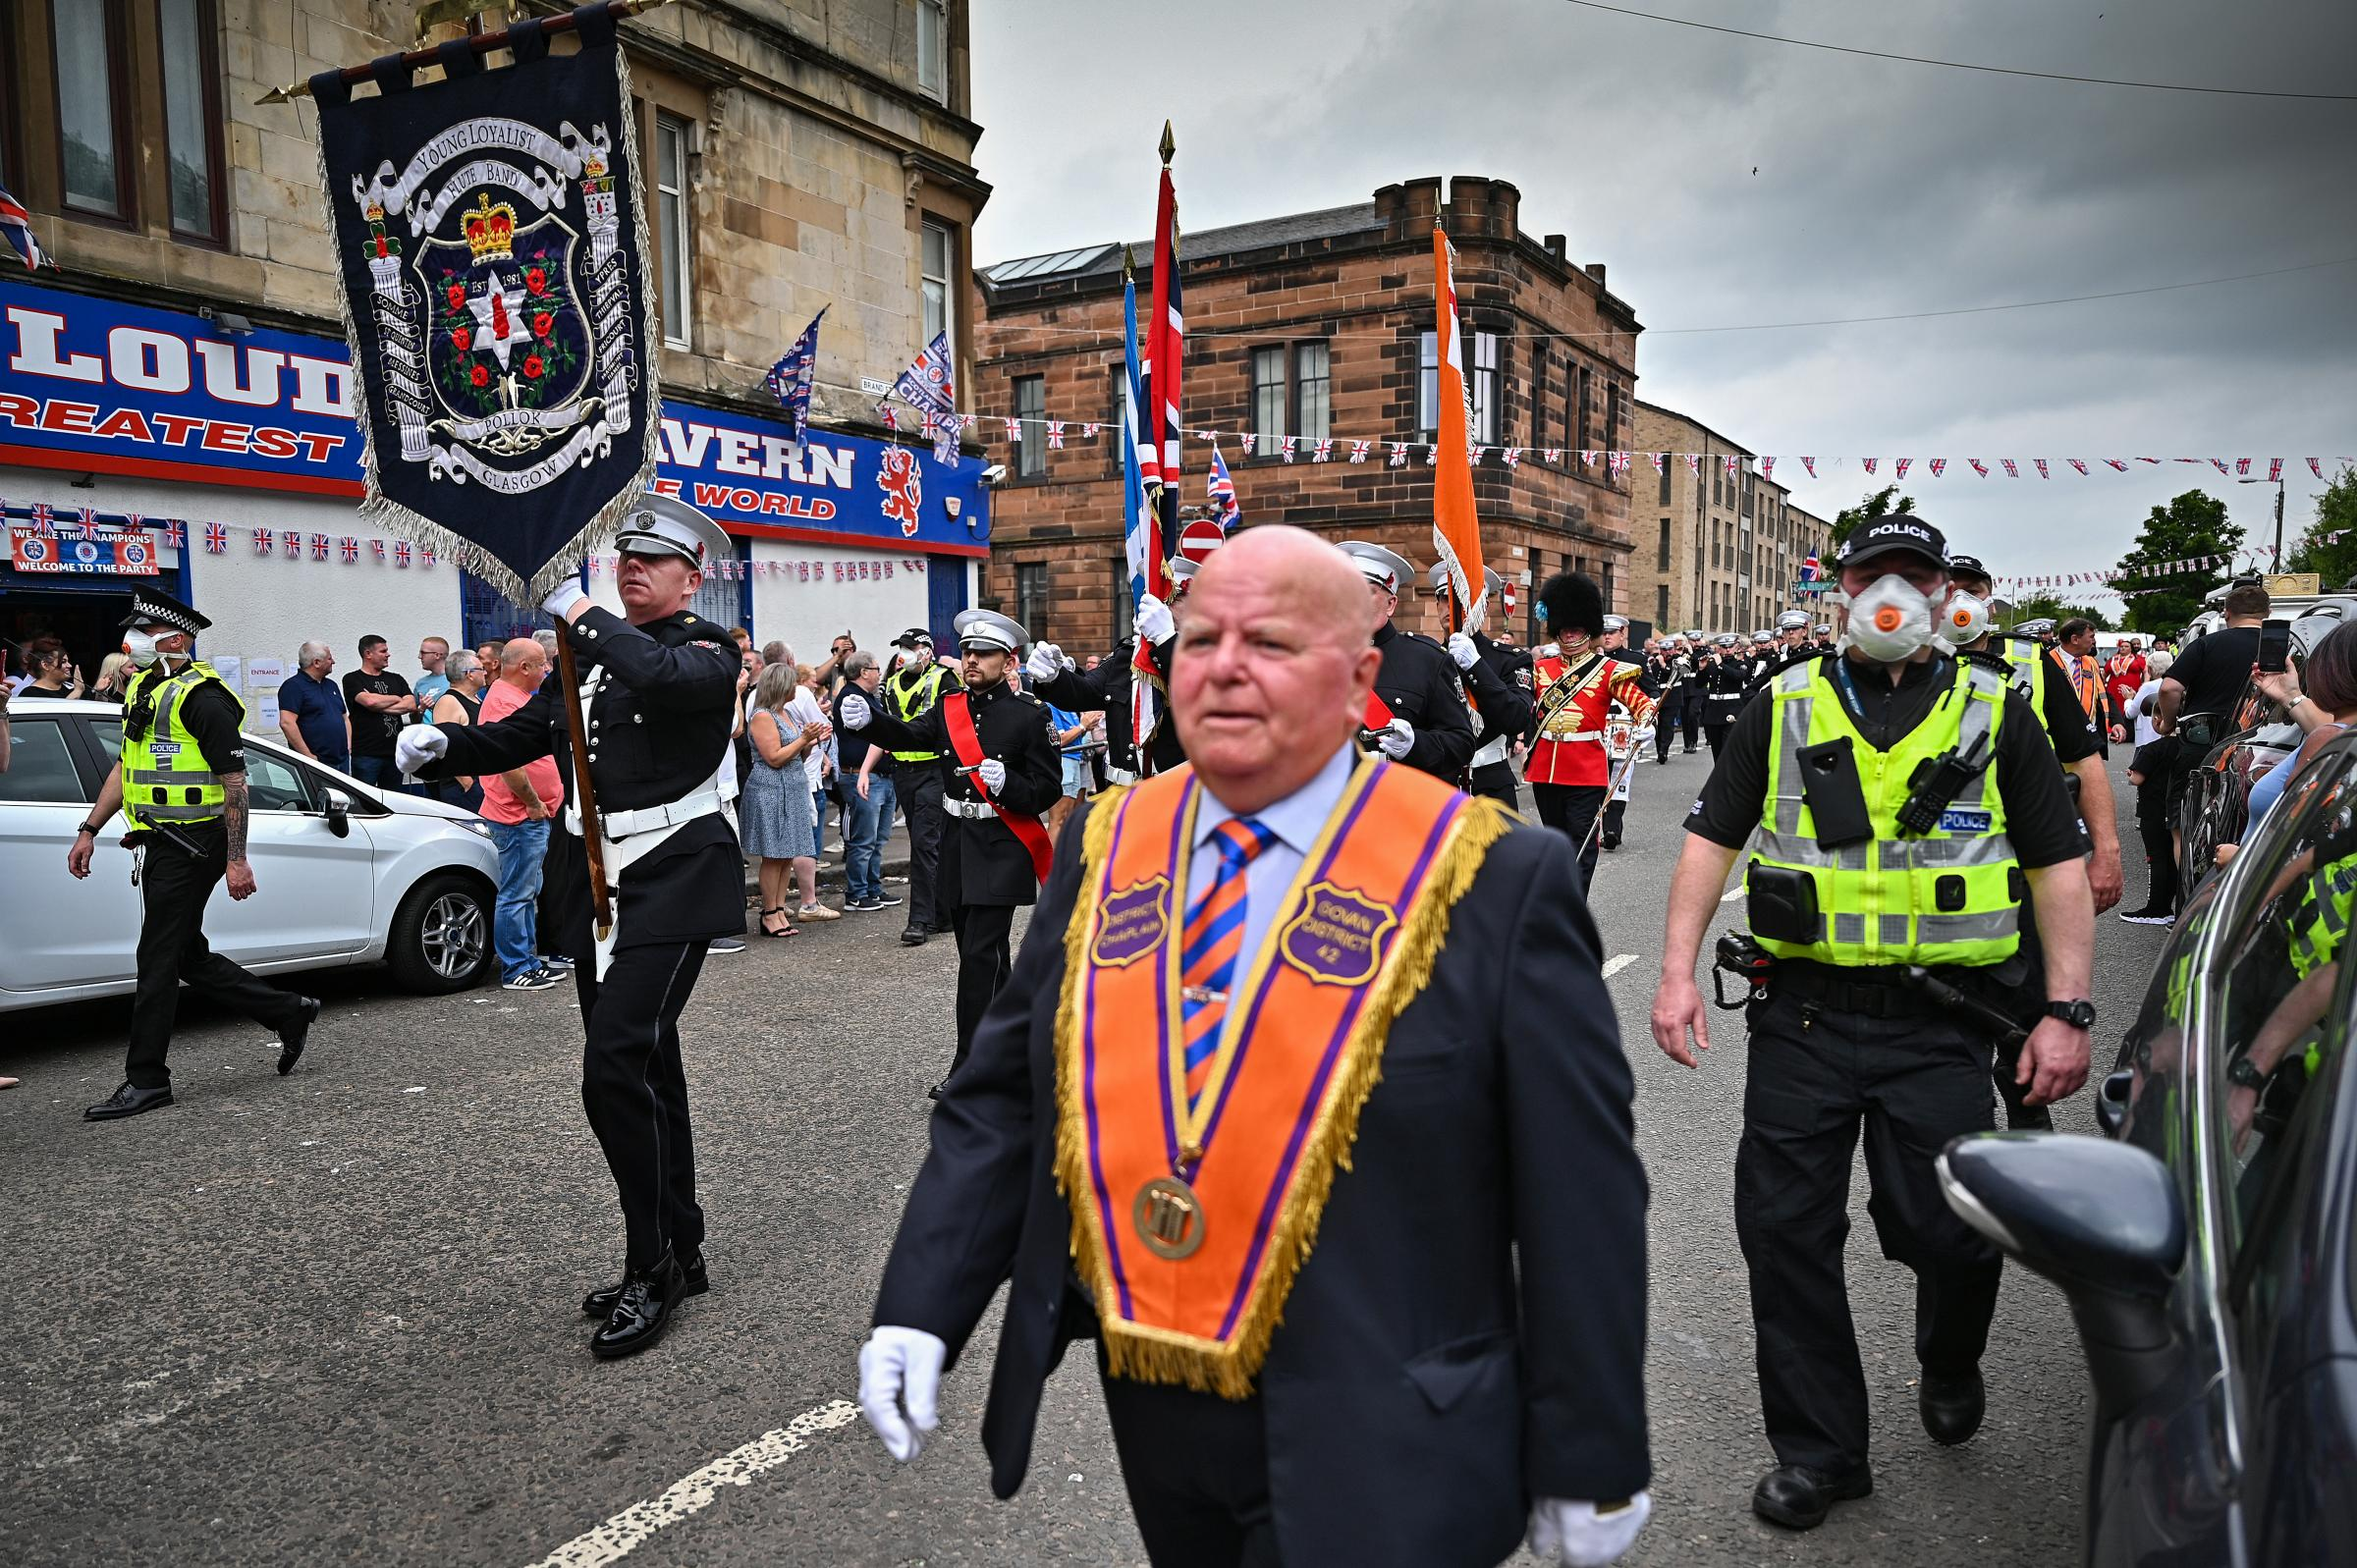 Council and police say no advice given to re-route Orange parades in Glasgow on Saturday